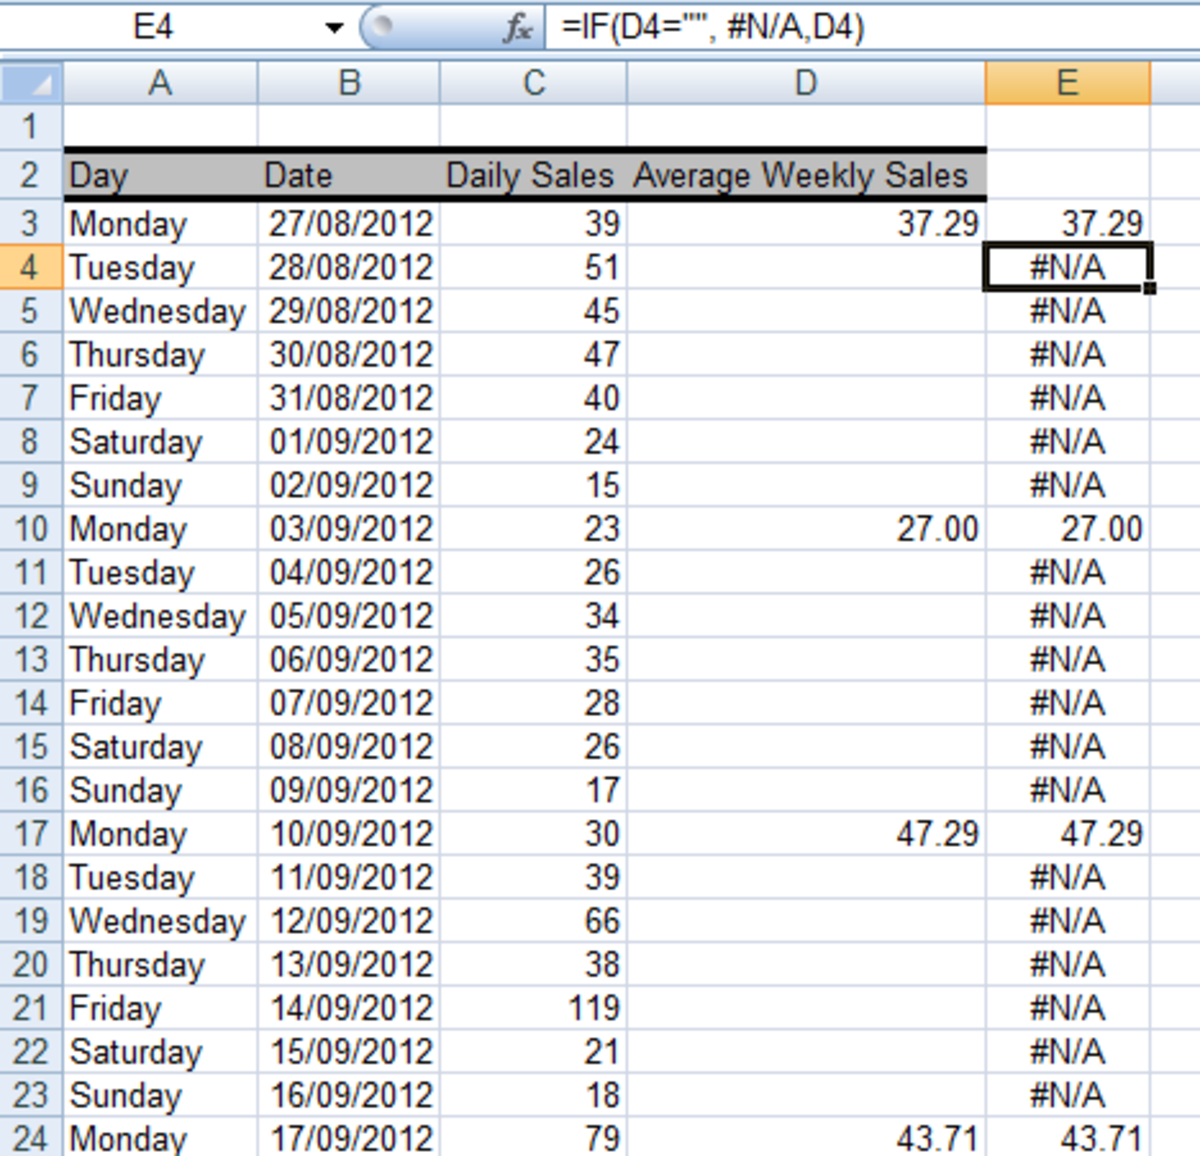 Ediblewildsus  Remarkable How To Get Excel  And  To Ignore Empty Cells In A Chart Or  With Fair Using The If Function In A Formula To Convert Empty Cells To Na With Beautiful Excel How To Identify Duplicates Also Excel Academy Ny In Addition If Countif Excel And Auto Lease Calculator Excel As Well As Compare Excel Spreadsheets  Additionally If Then On Excel From Turbofuturecom With Ediblewildsus  Fair How To Get Excel  And  To Ignore Empty Cells In A Chart Or  With Beautiful Using The If Function In A Formula To Convert Empty Cells To Na And Remarkable Excel How To Identify Duplicates Also Excel Academy Ny In Addition If Countif Excel From Turbofuturecom